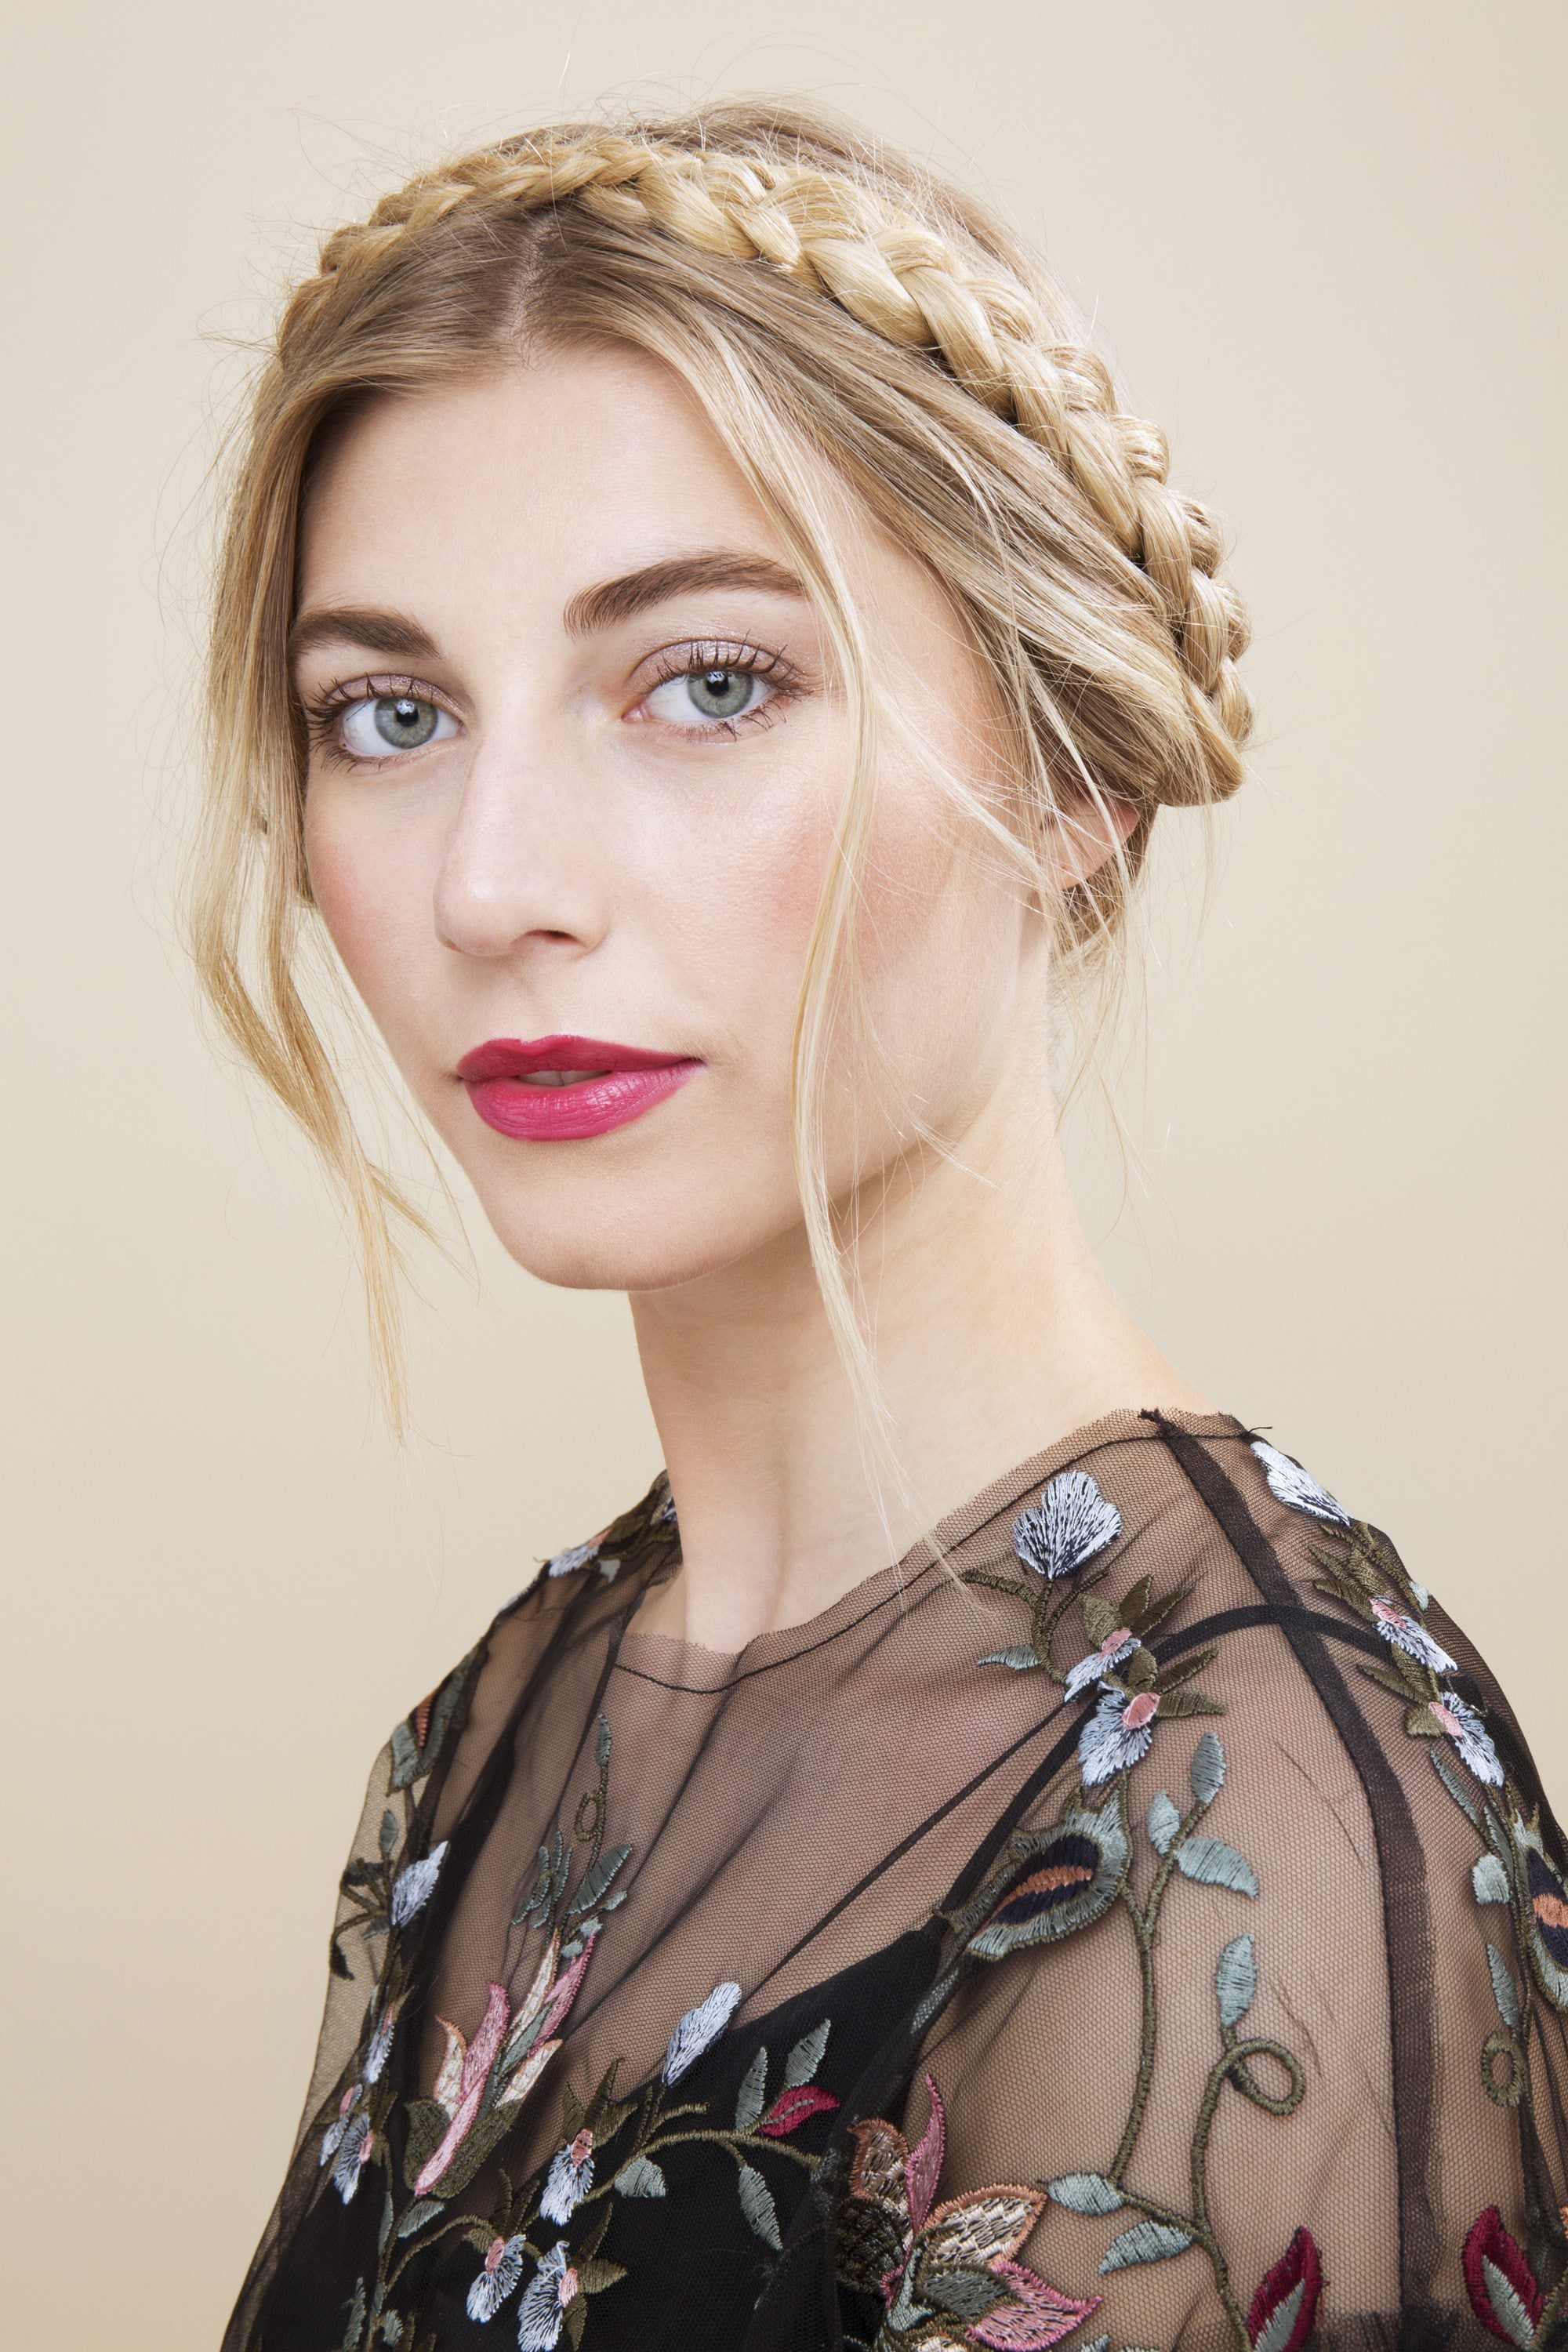 blonde model wearing a blackfloral mesh top with her hair in a milkmaid braid updo with loose face-framing pieces of hair